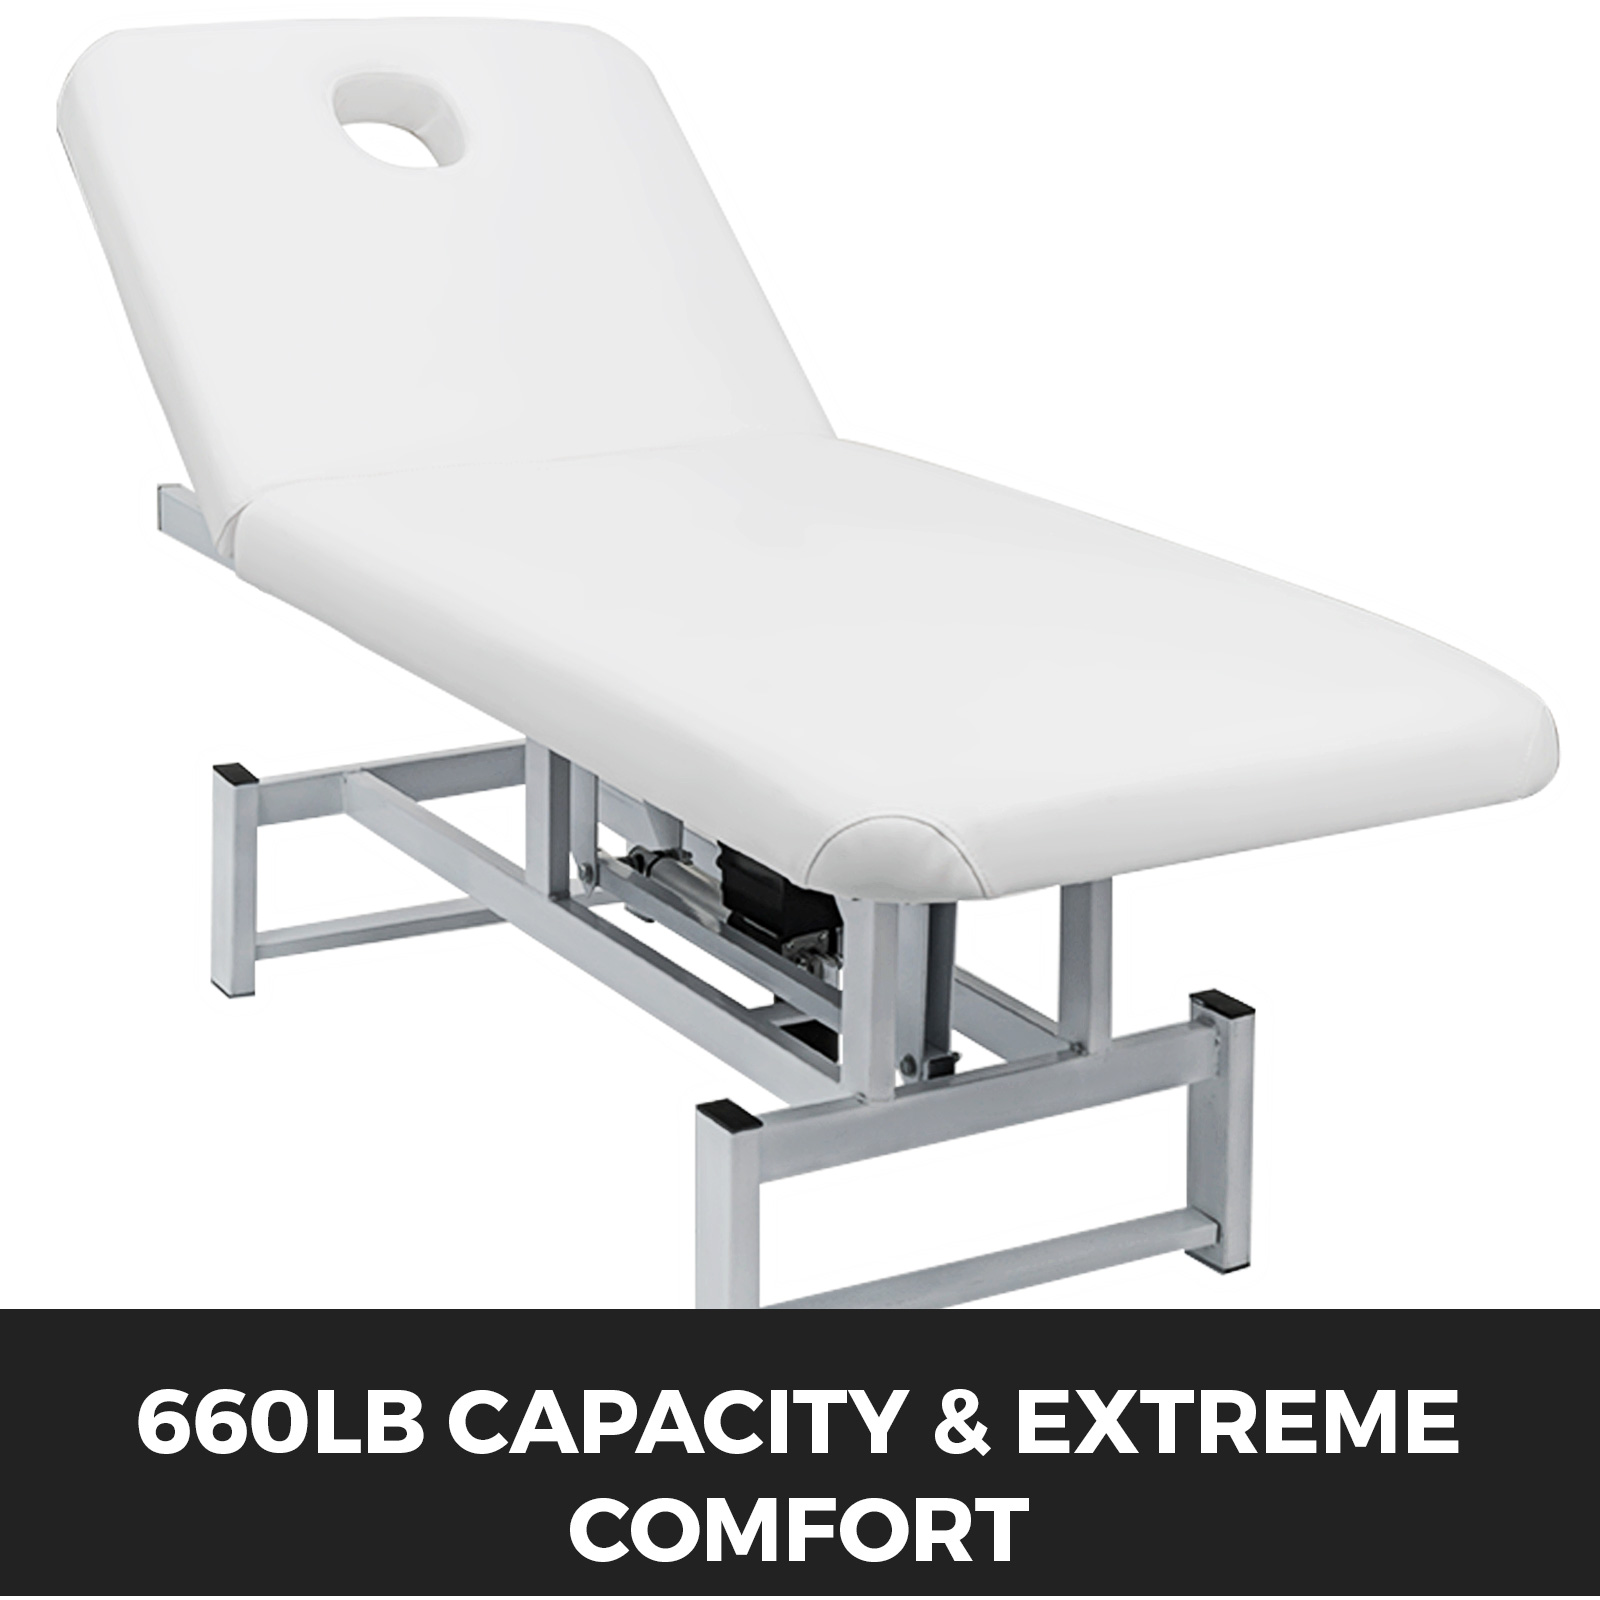 Details about Electric Massage Facial Table Bed Chair Beauty Spa Salon Equipment Barber Beauty